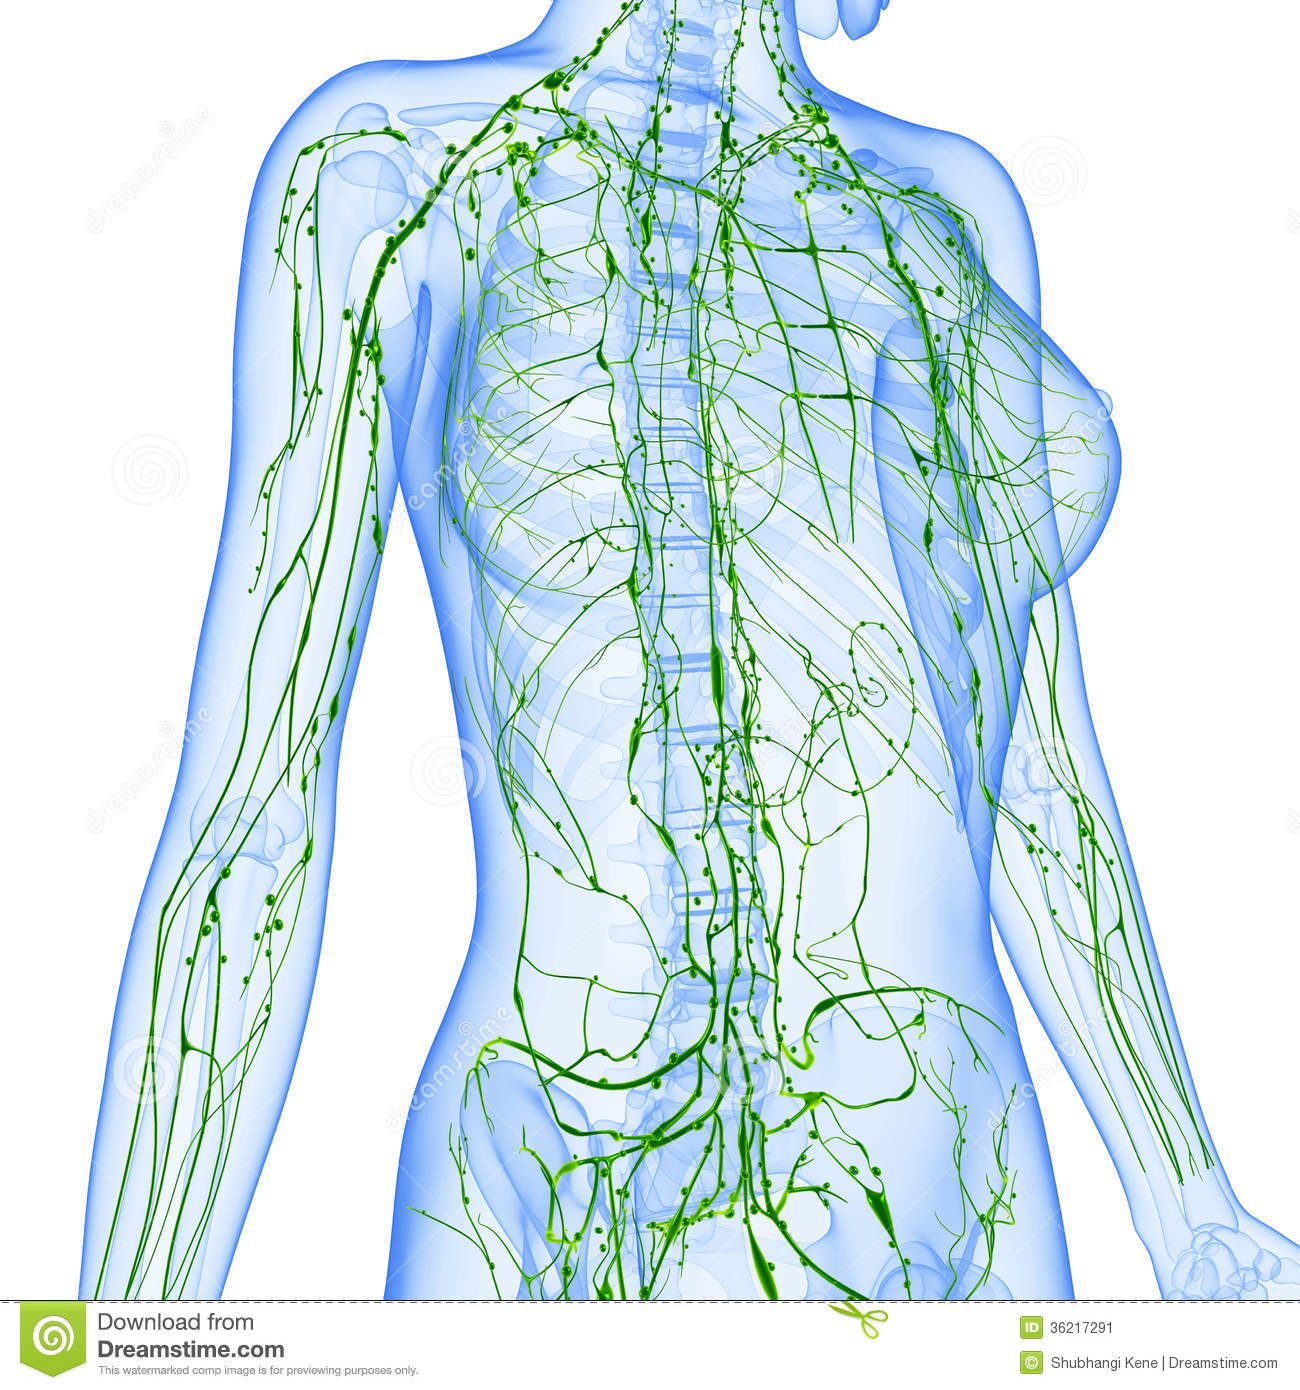 Lymphatic System - Pictures, posters, news and videos on ...